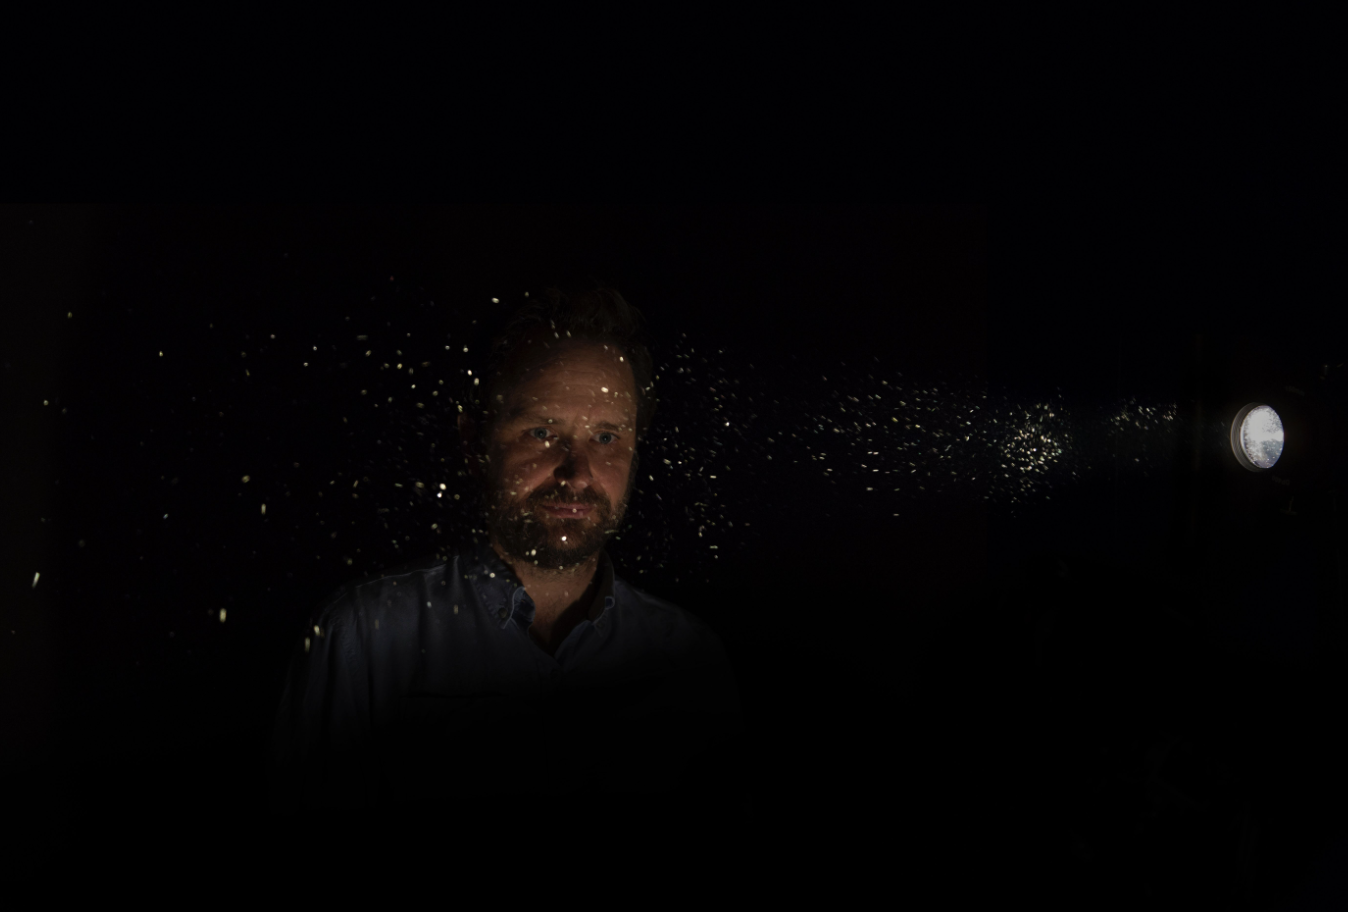 Tomás Saraceno Convinced His New Art Gallery to Shorten Its Hours and Switch to Renewable Energy for His Debut Exhibition   Artnet News